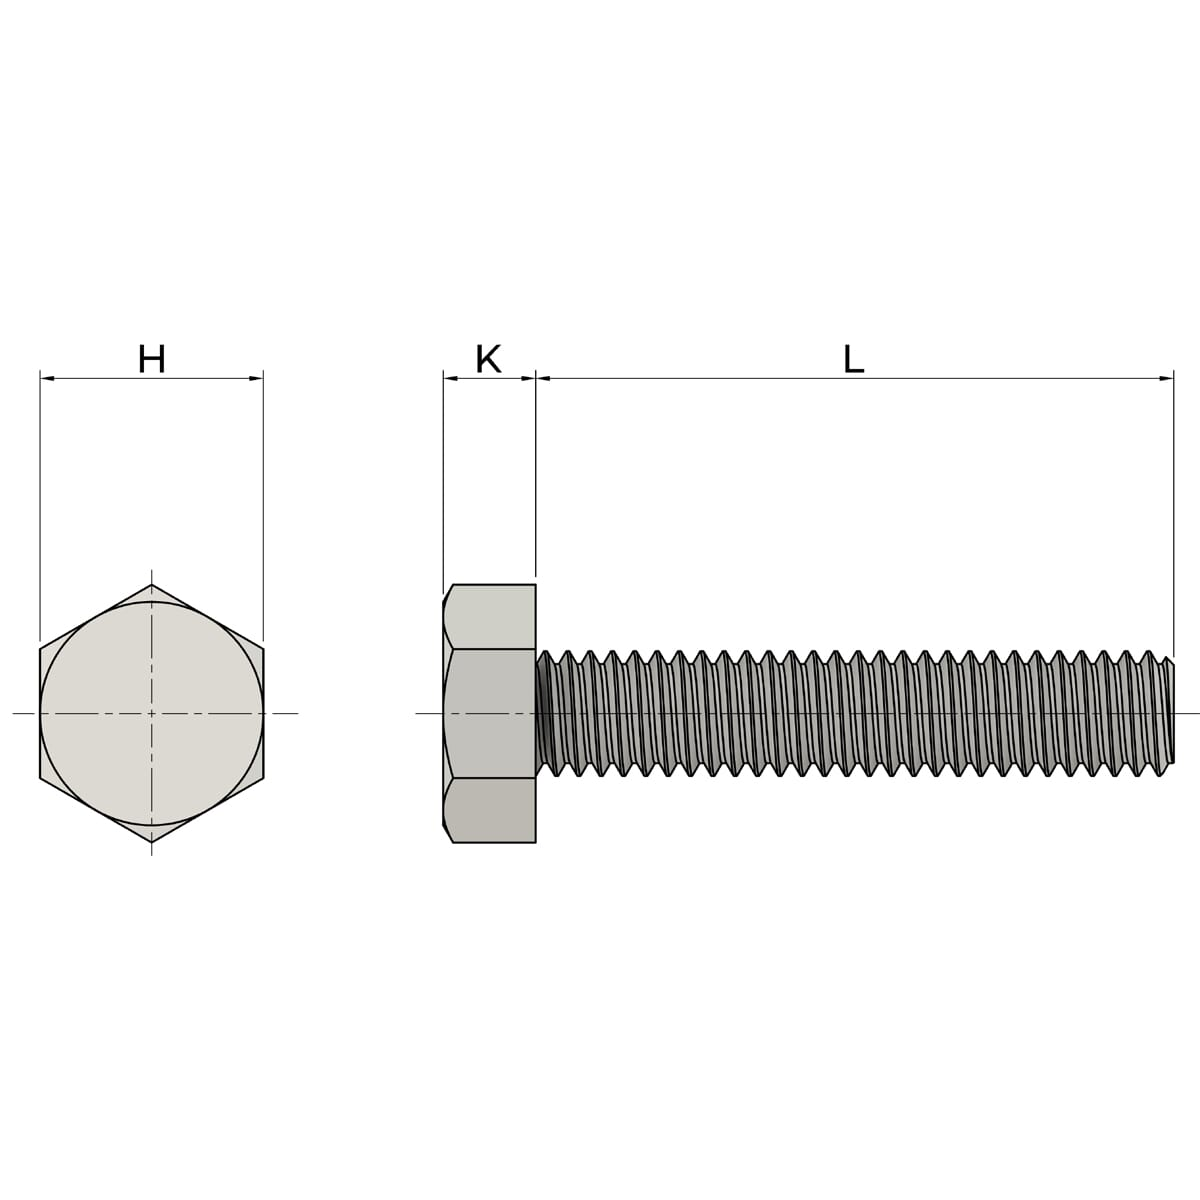 M6 x 50mm Full Thread Hexagon Bolts (DIN 933) - High Tensile Stainless Steel (A4-80) Drawing